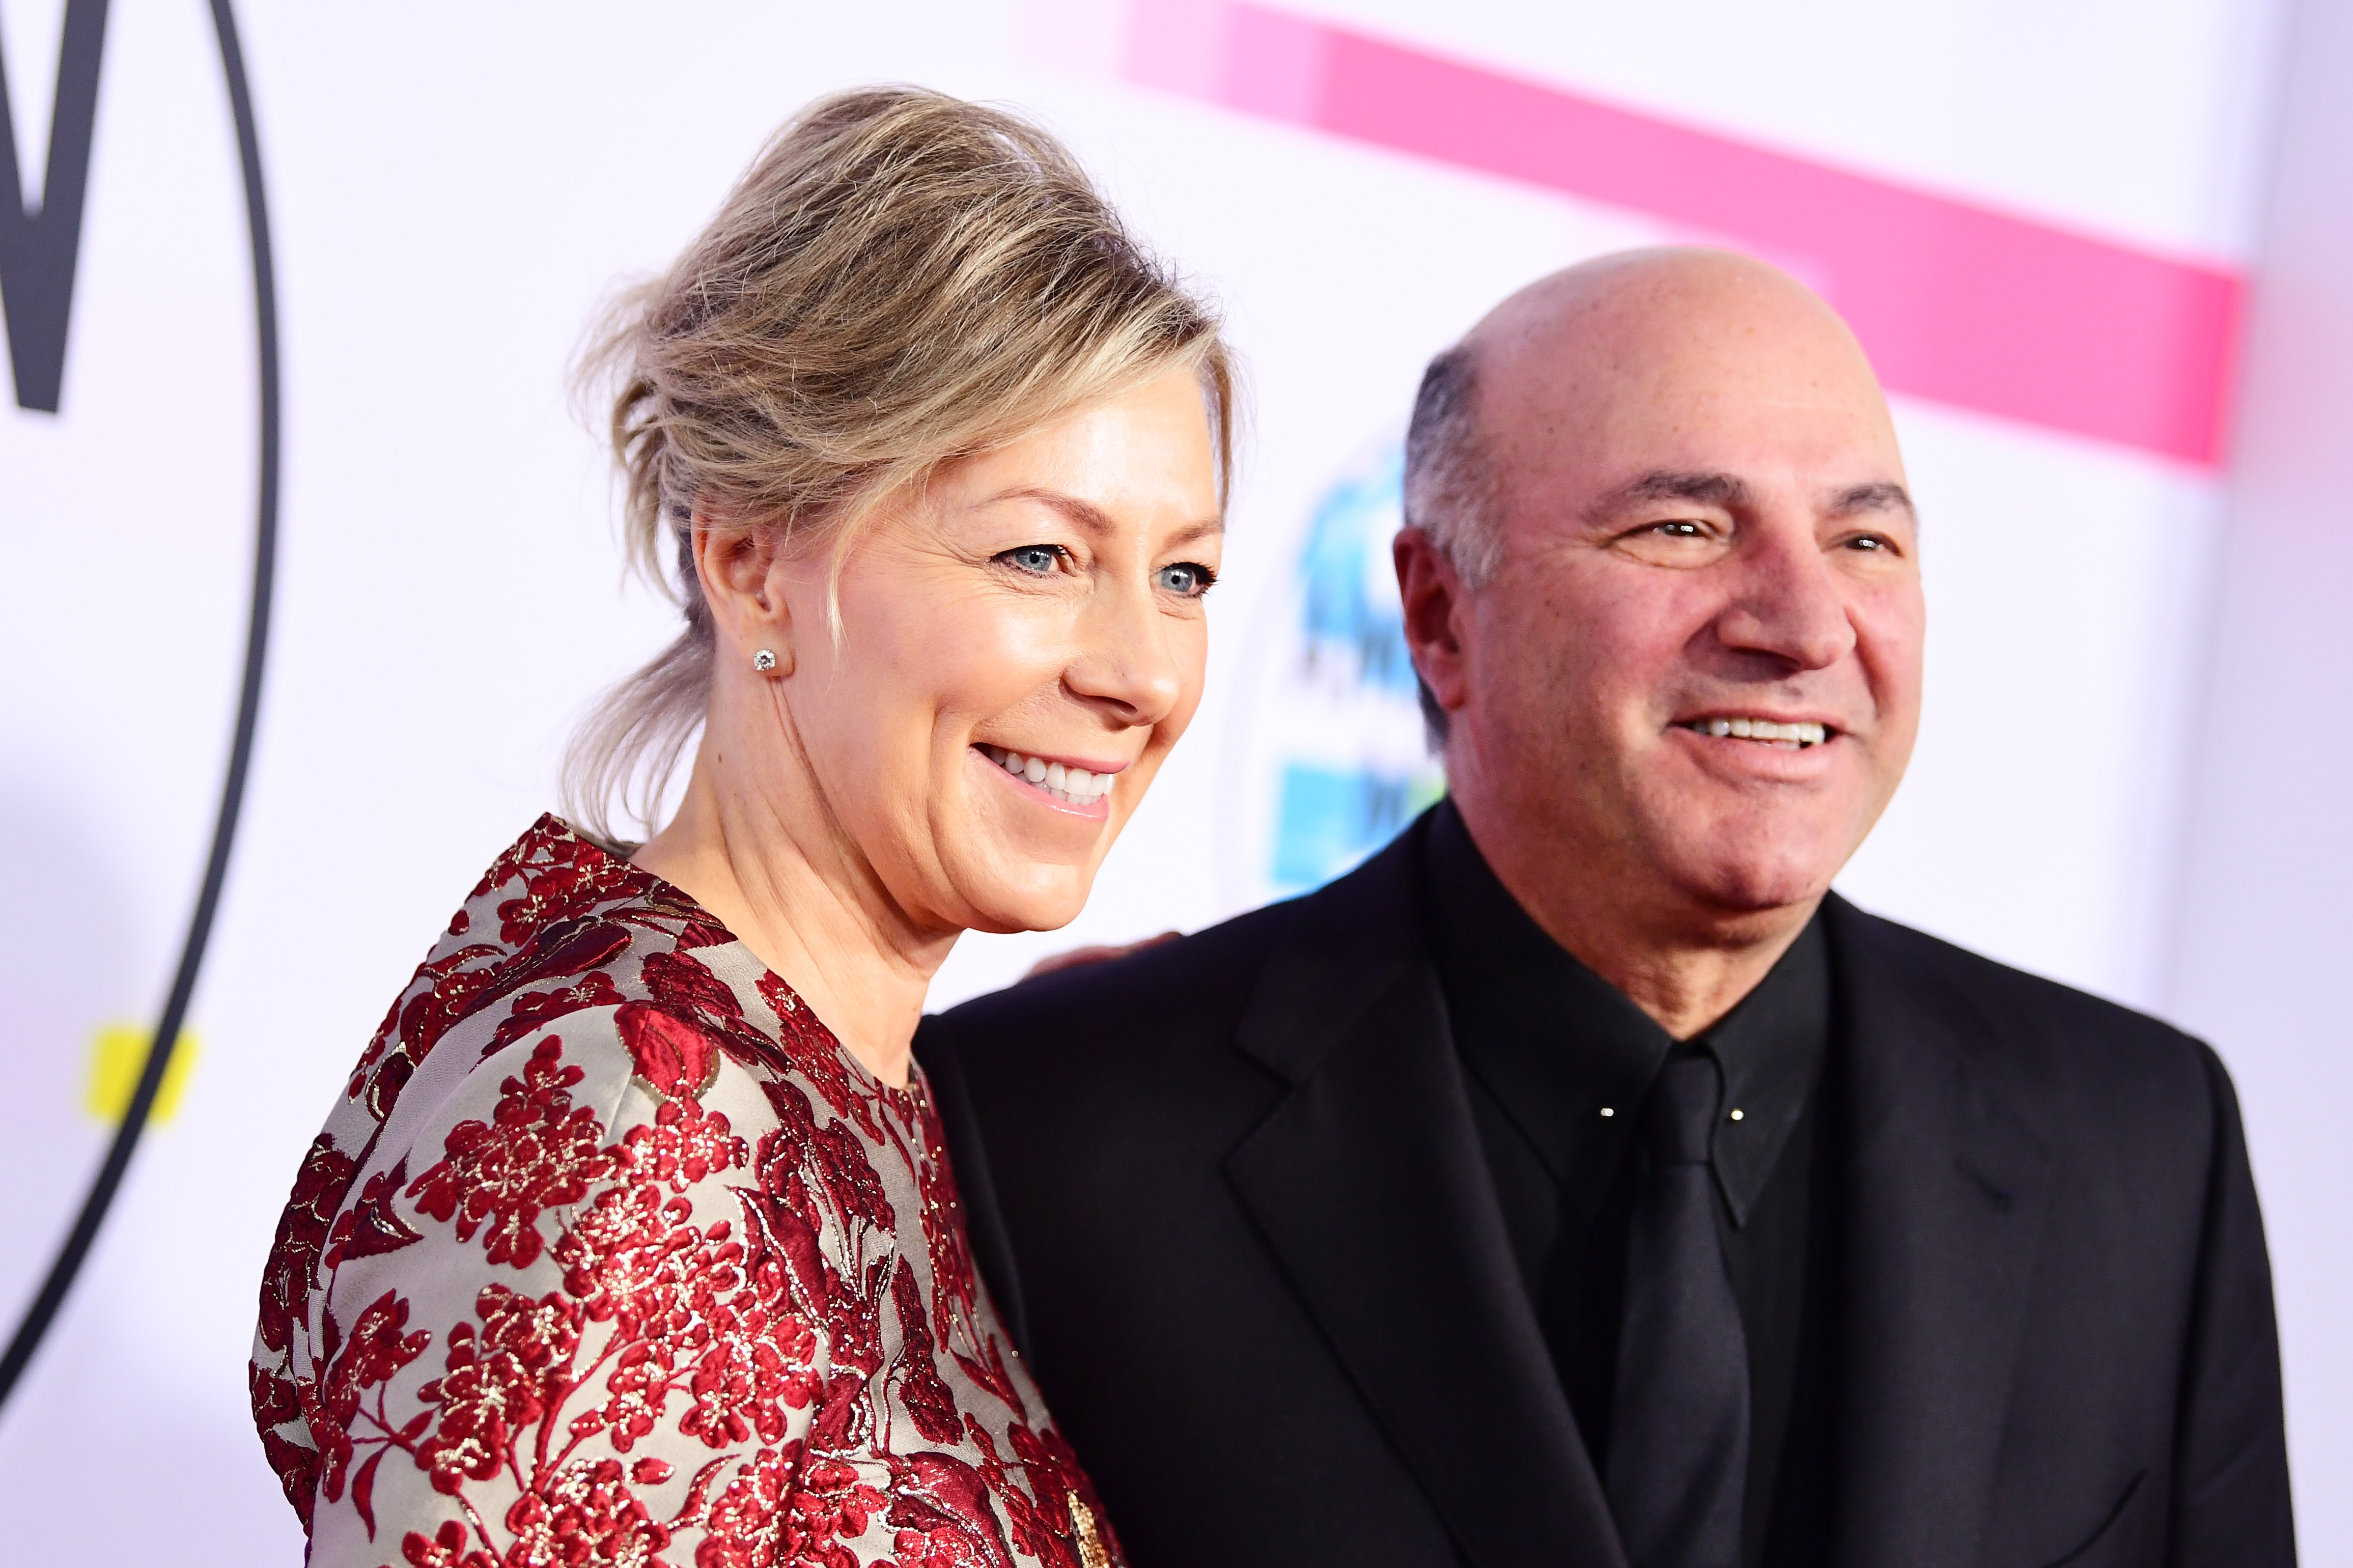 'Shark Tank' star's wife charged in fatal Canada boat crash